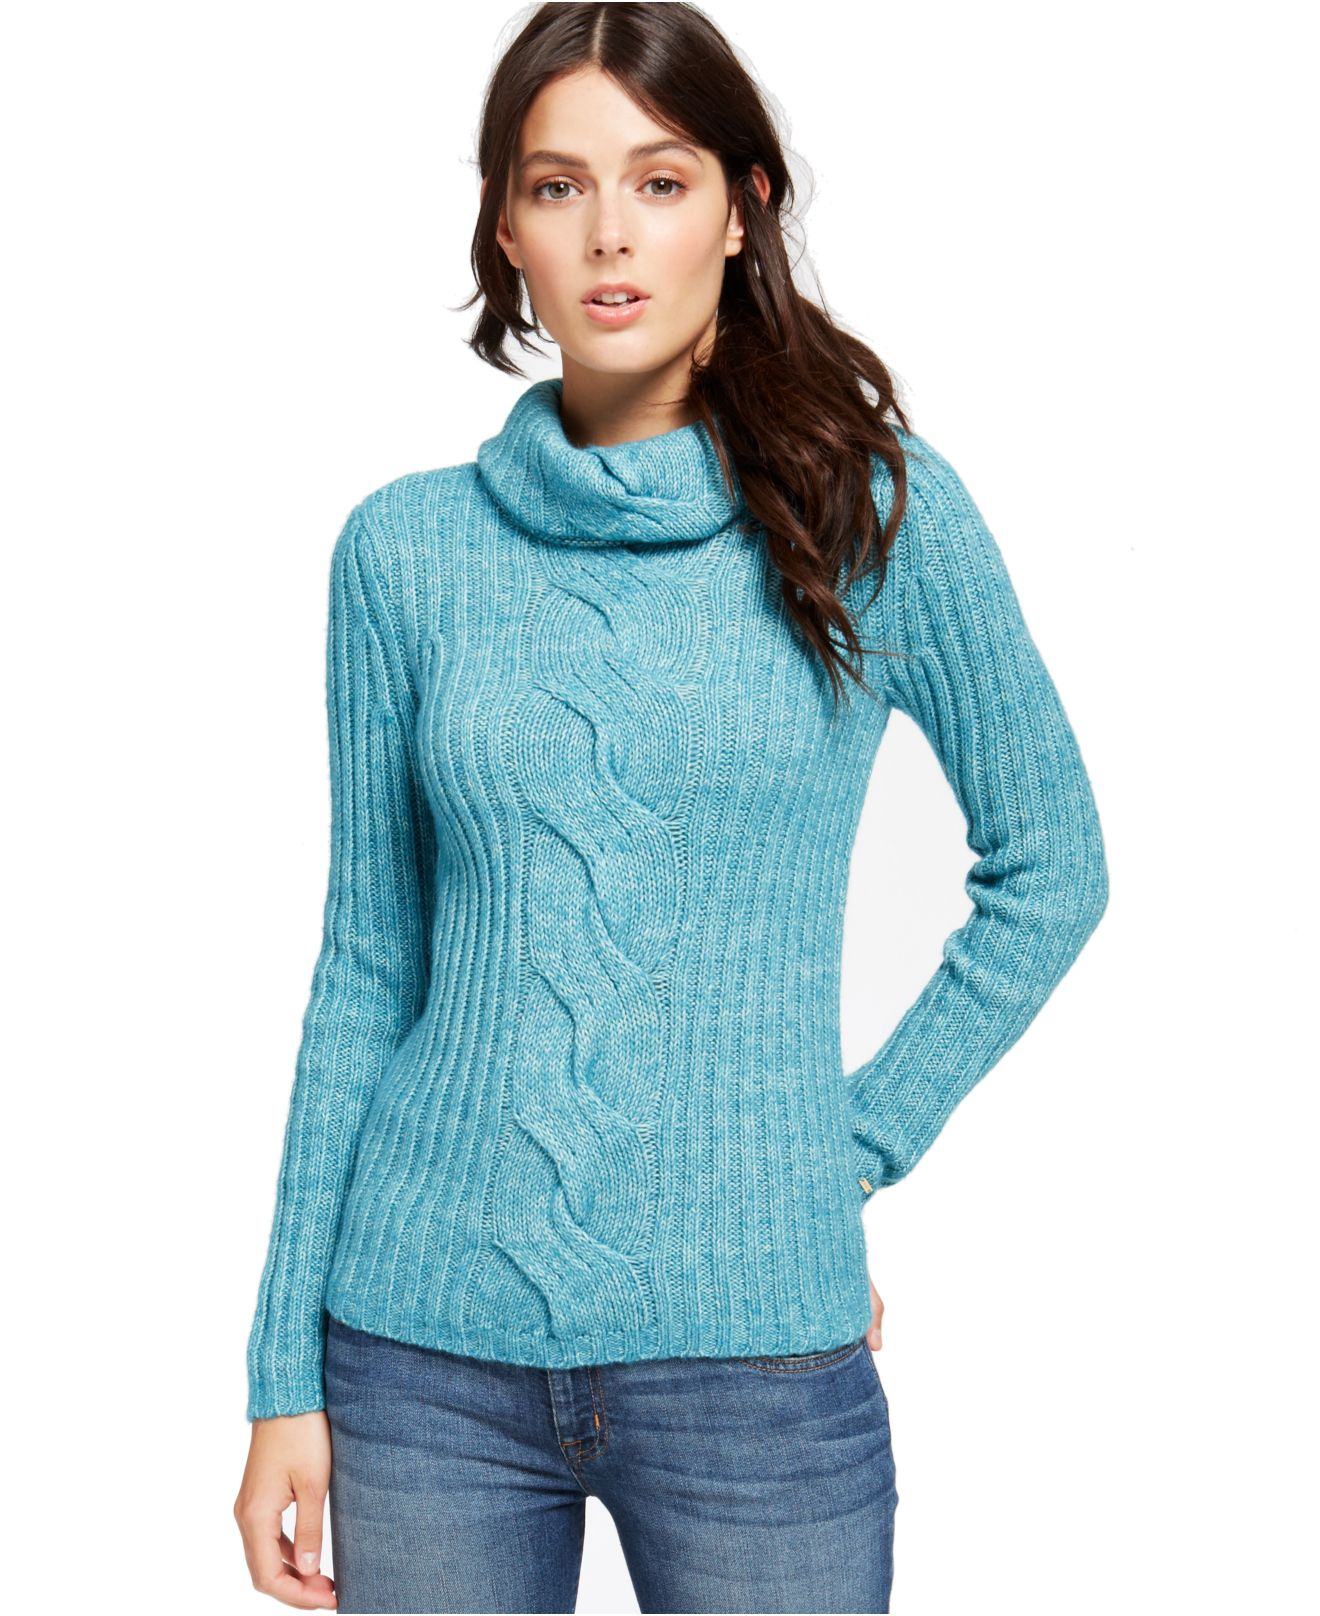 Cowl Neckline: Tommy Hilfiger Cable-Knit Cowl-Neck Sweater In Blue